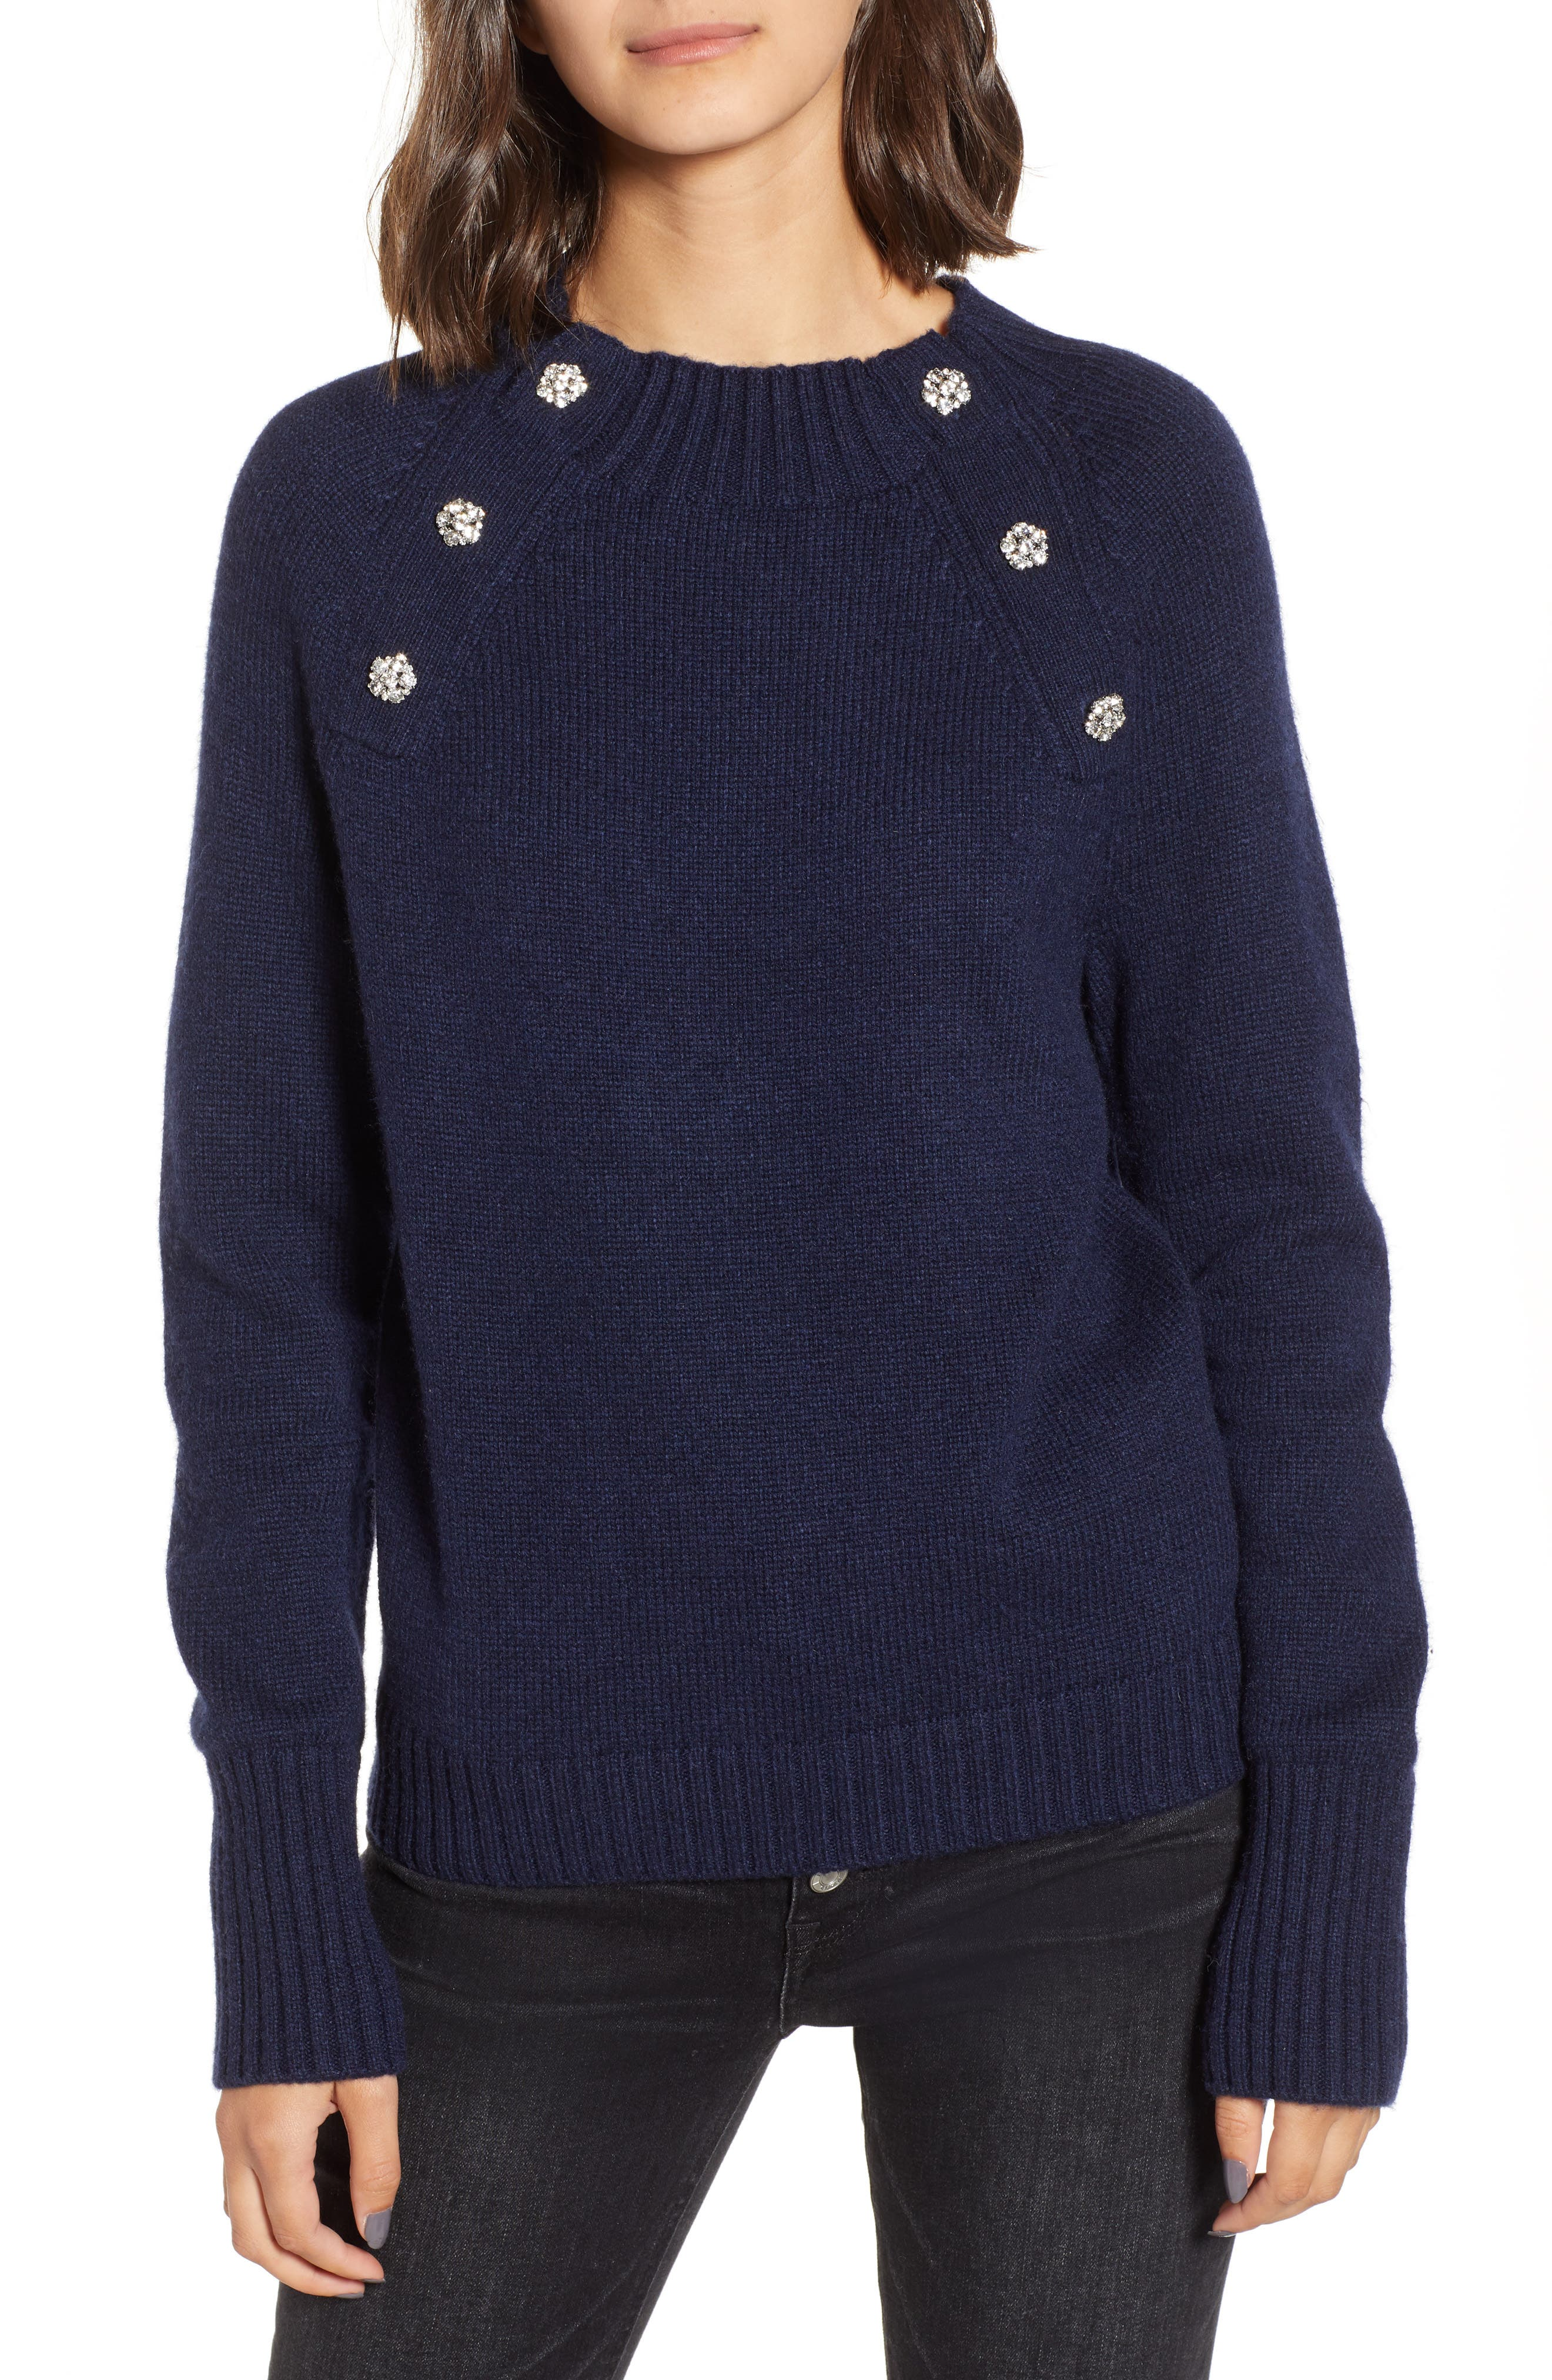 Sweater with Jeweled Buttons,                             Main thumbnail 1, color,                             NAVY